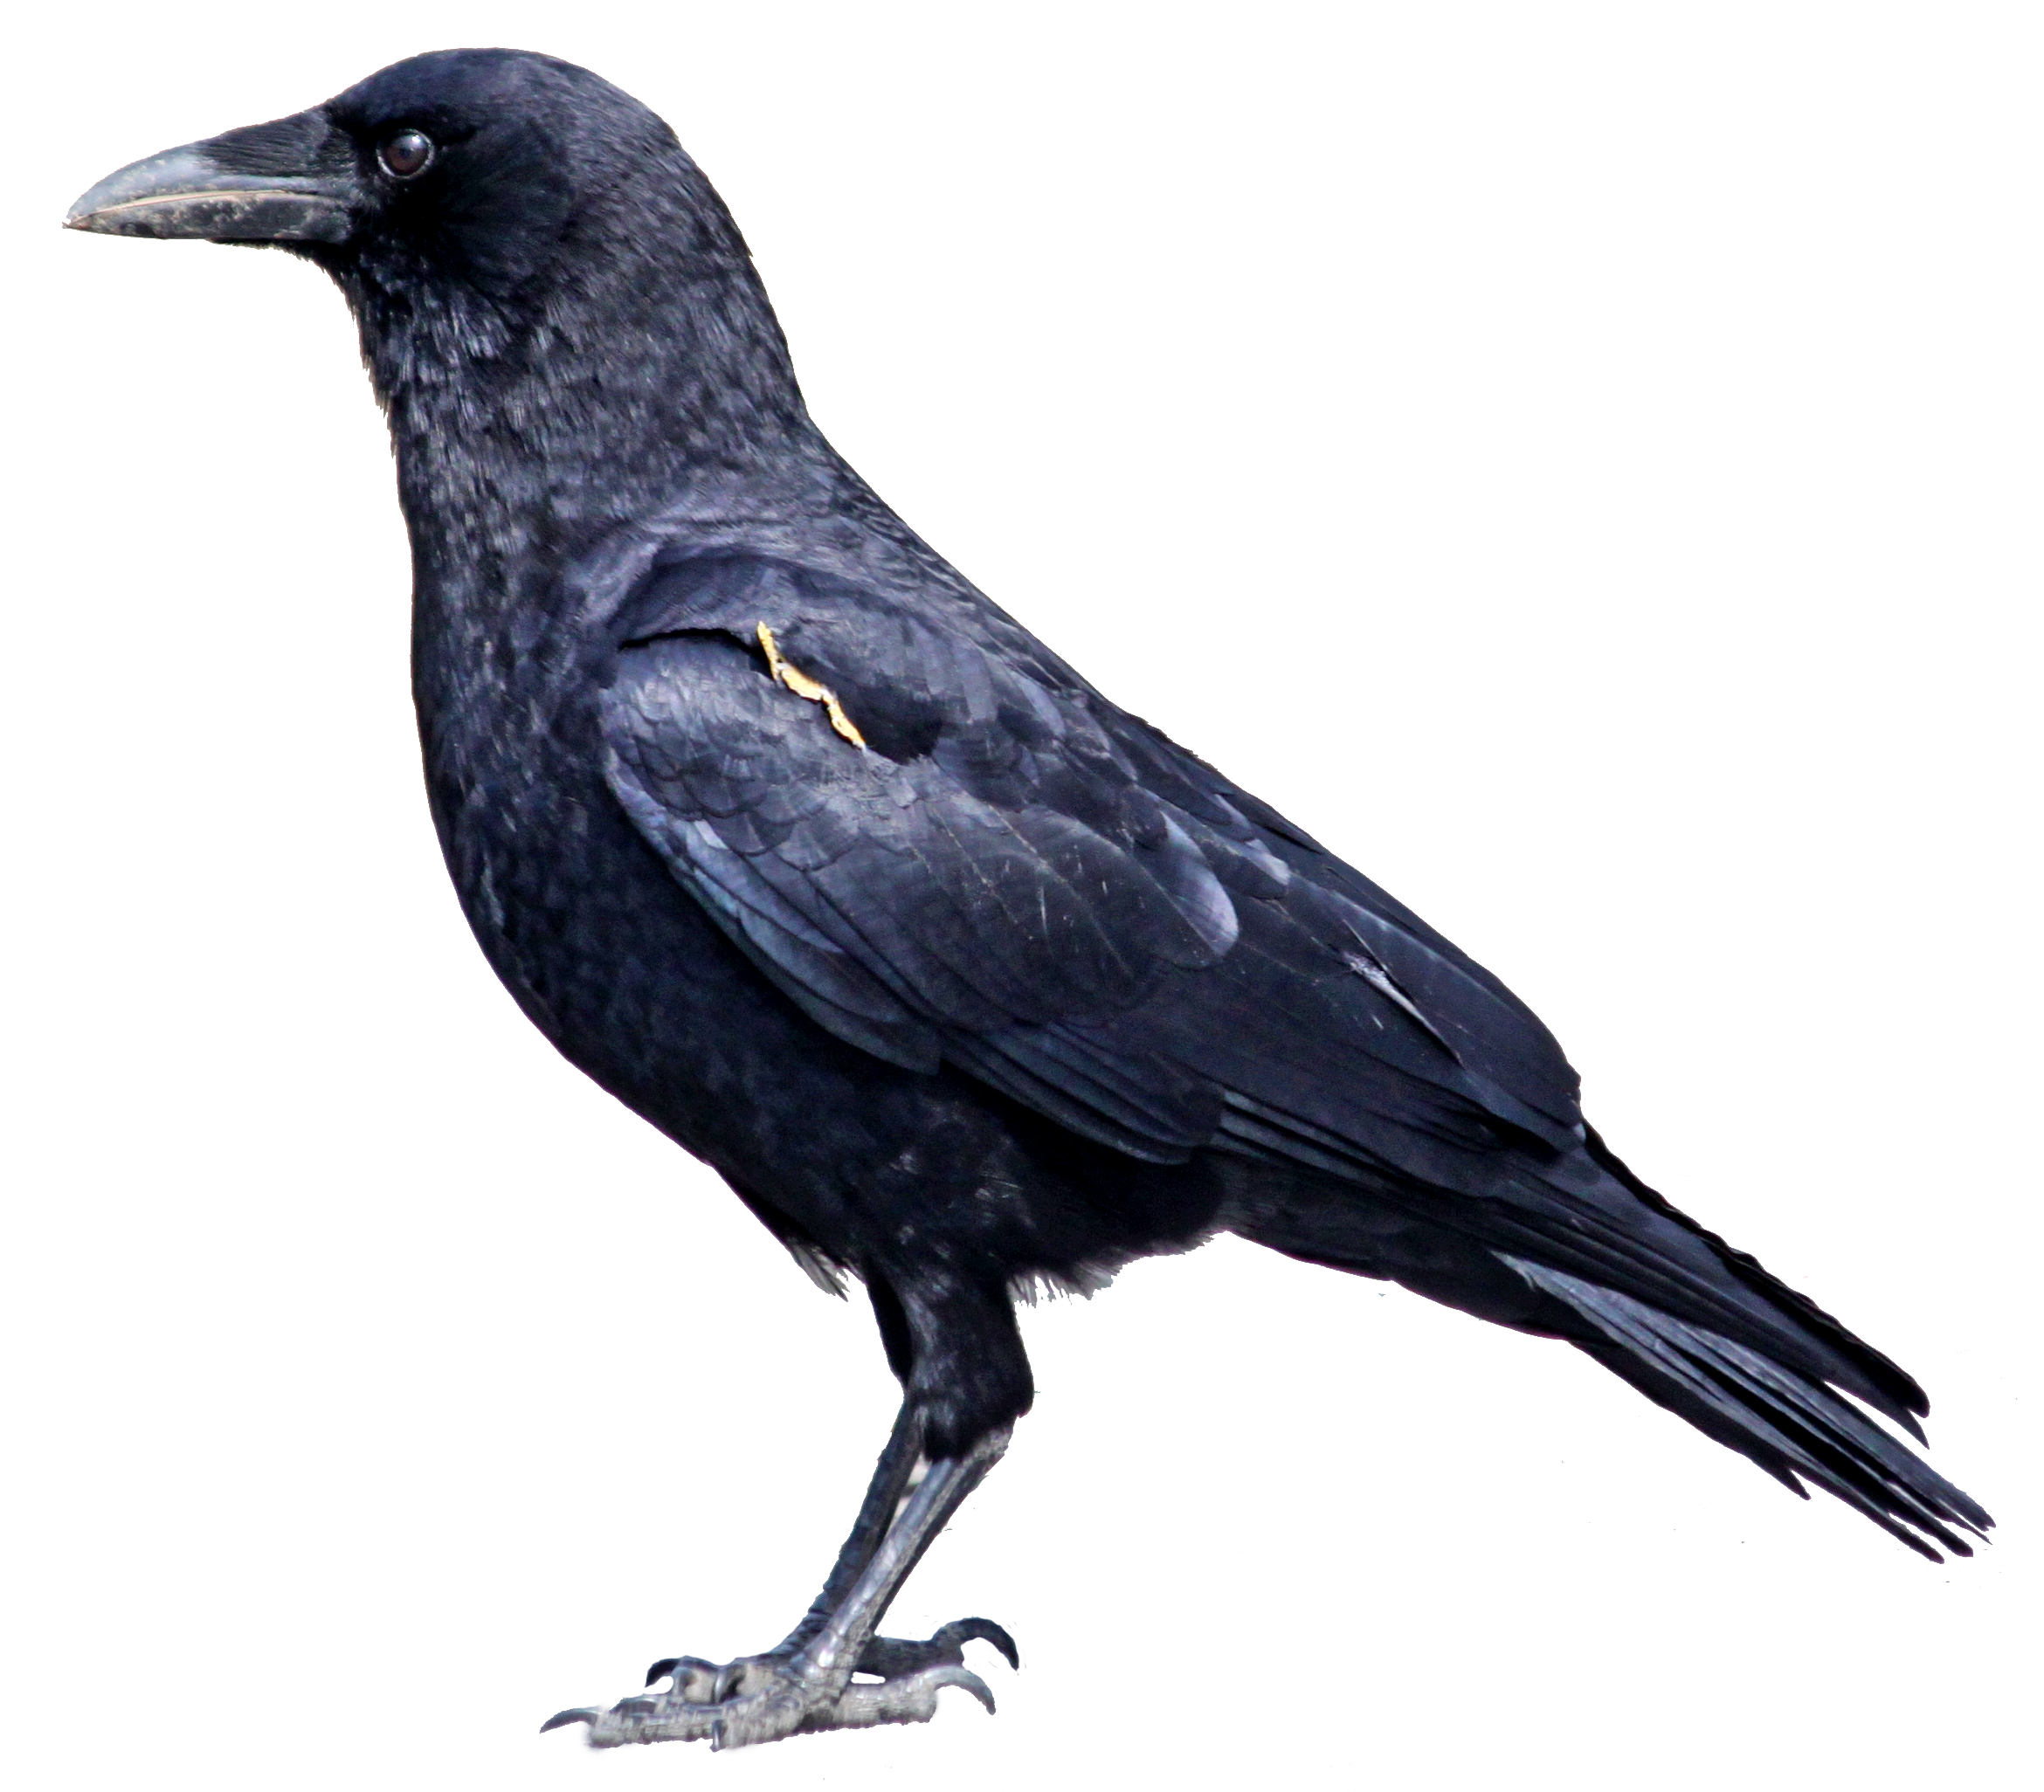 Pigeon clipart bible. Crow google image result